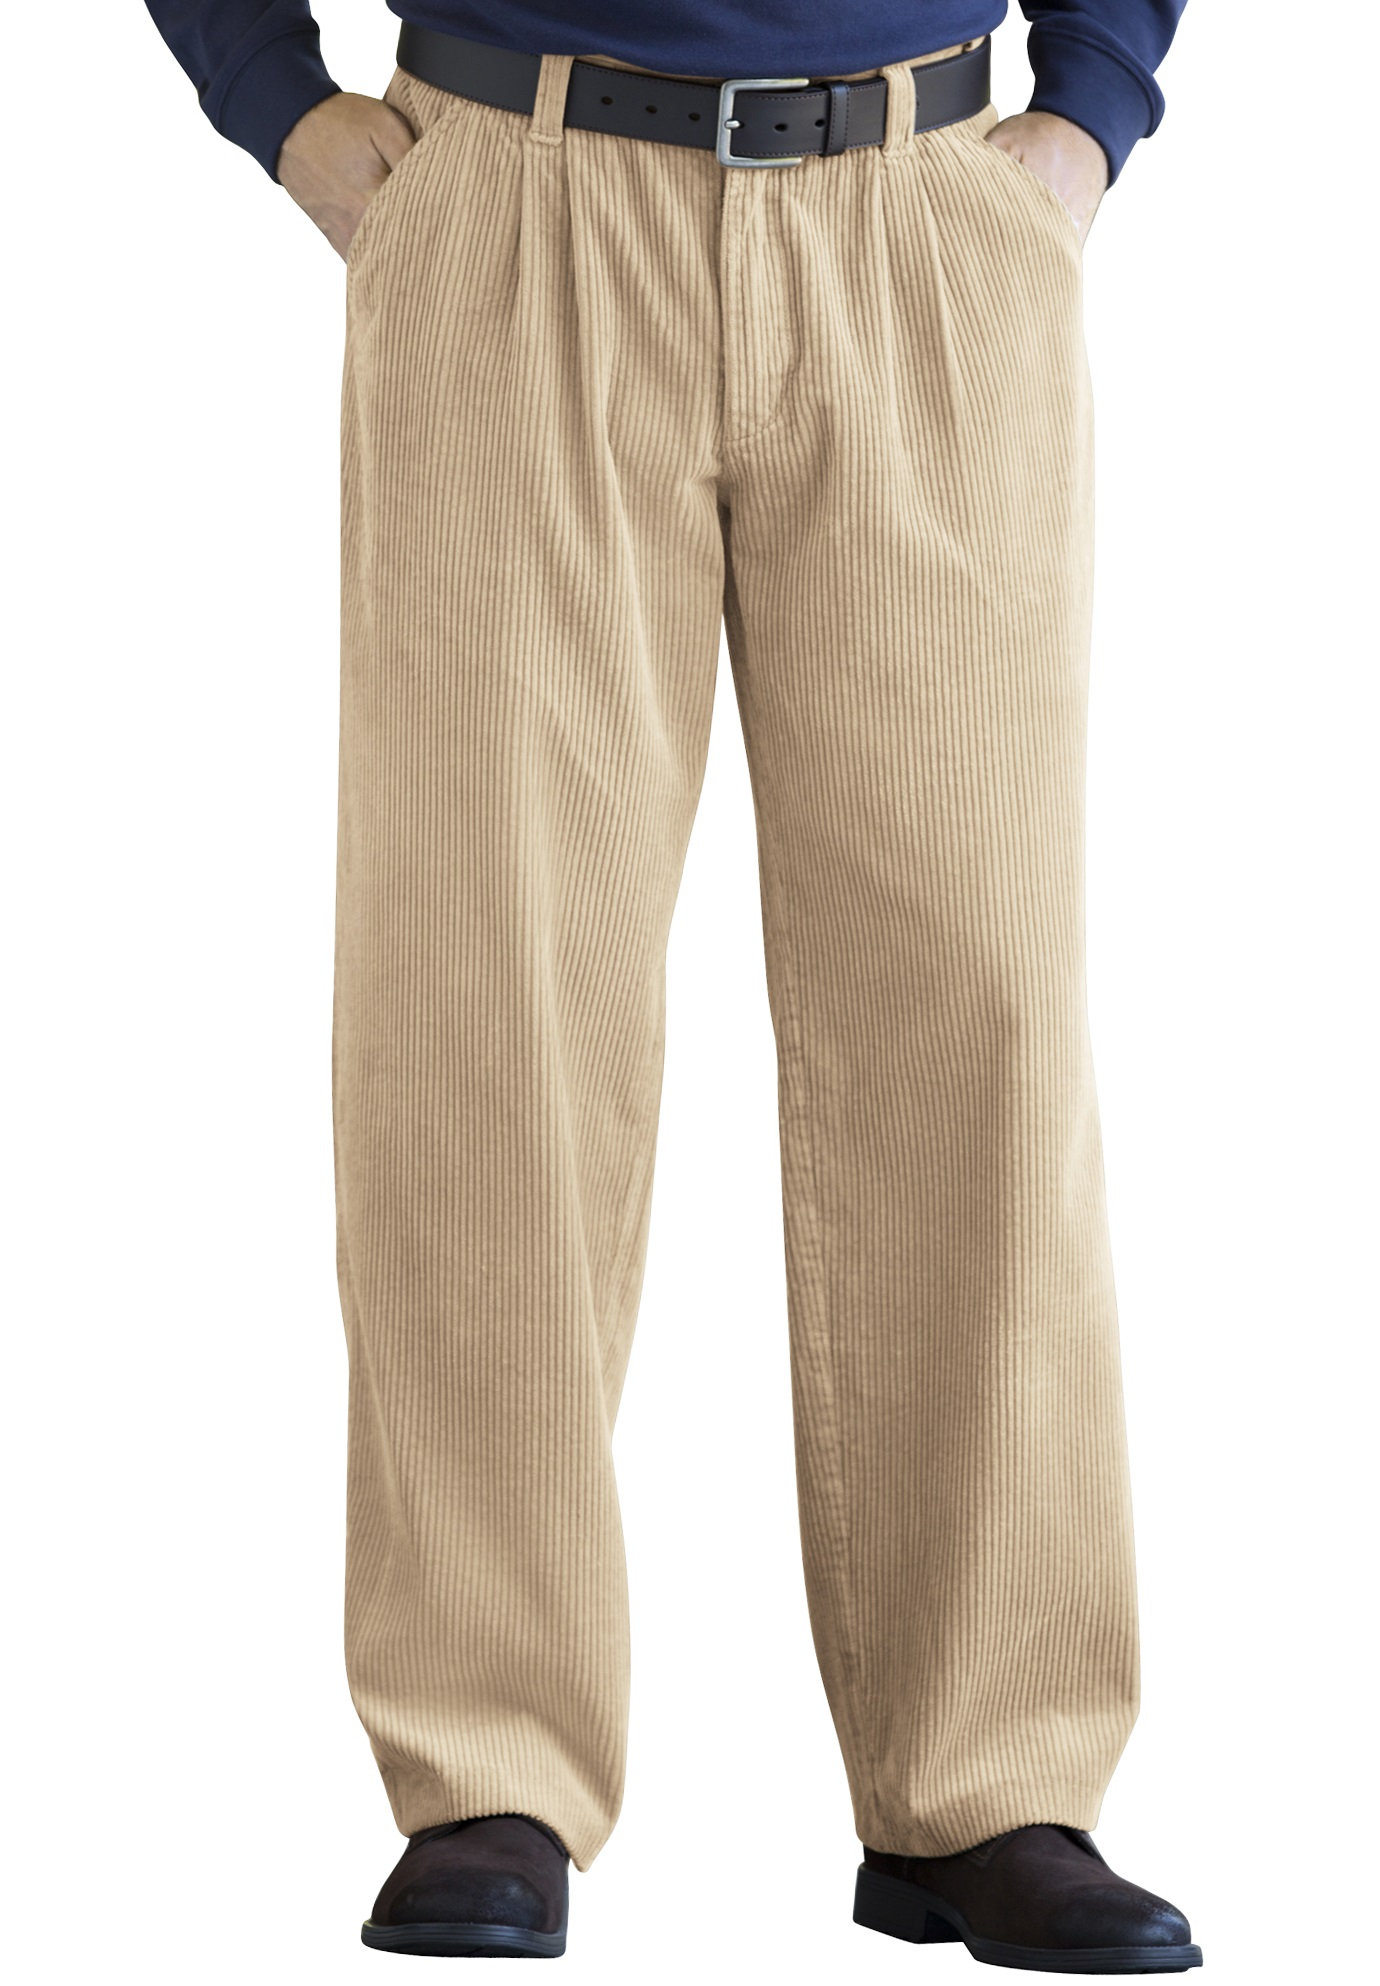 Six-Wale Corduroy Pleat-Front Pants,